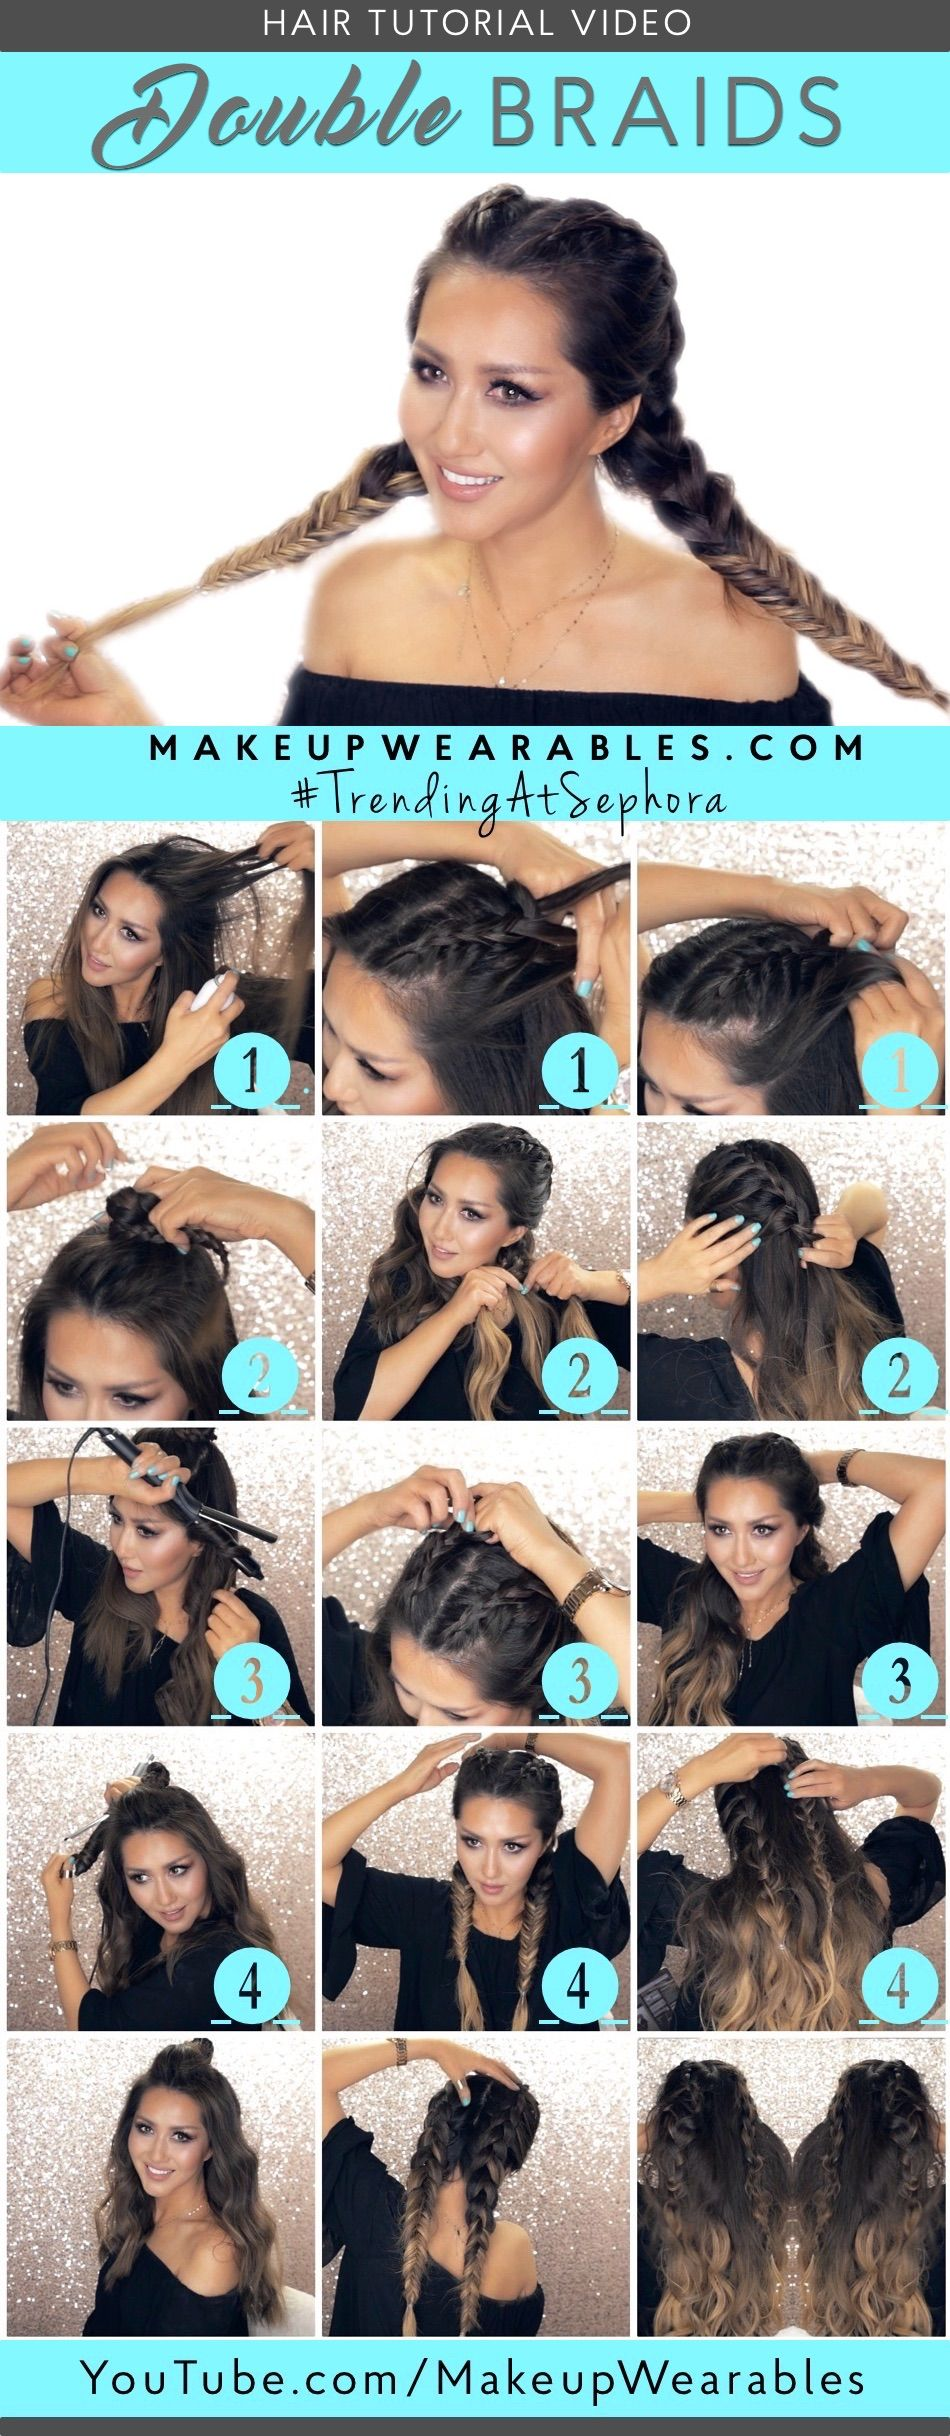 3 Spring Hairstyles With Braids 5 Minute Lazy Lob Waves Tutorial